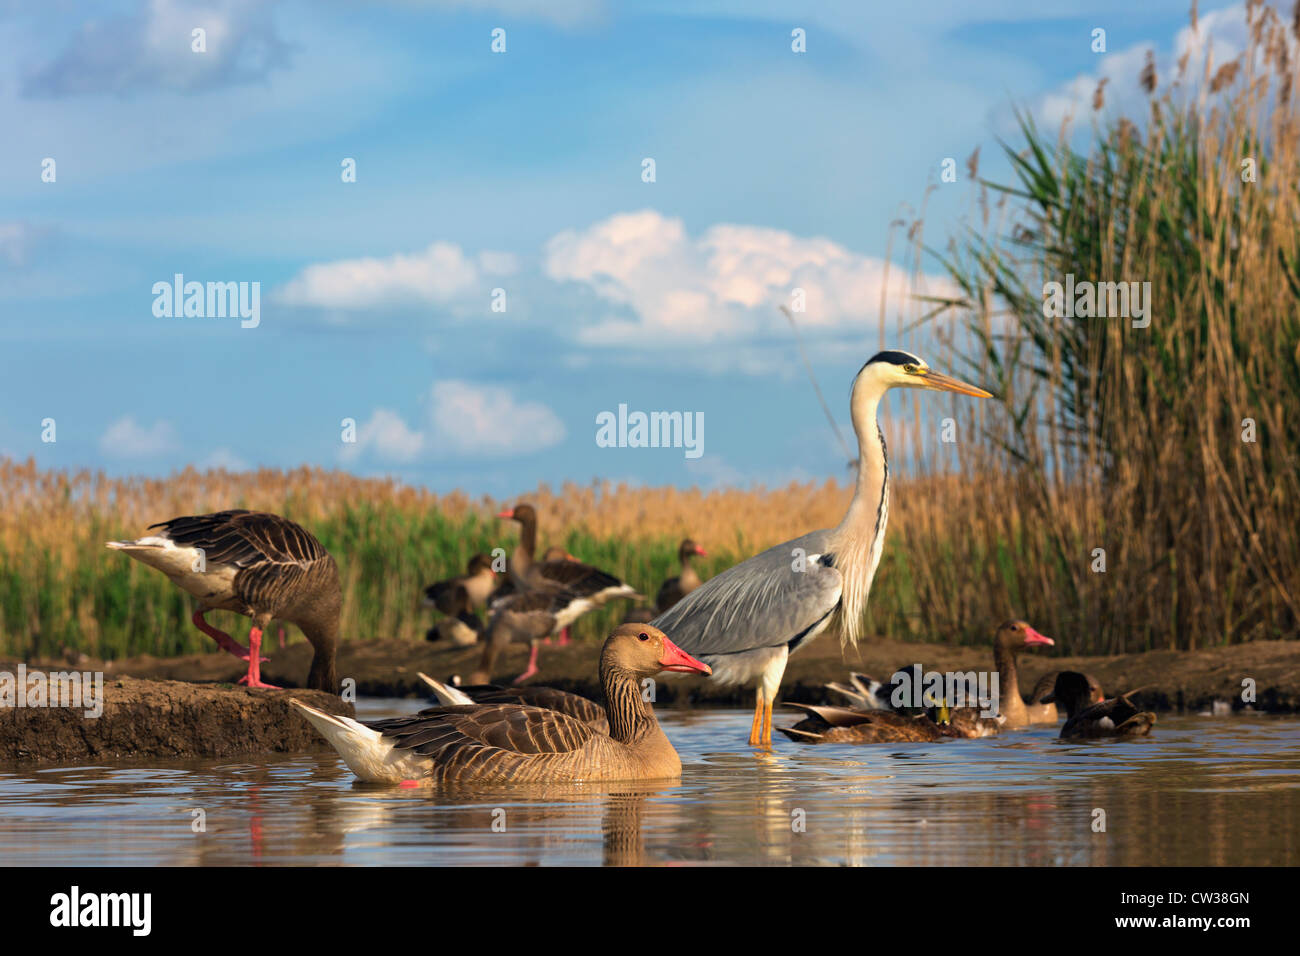 Greylag goose(Anser anser) and Grey Heron(Ardea cinerea) in background.Hungry - Stock Image